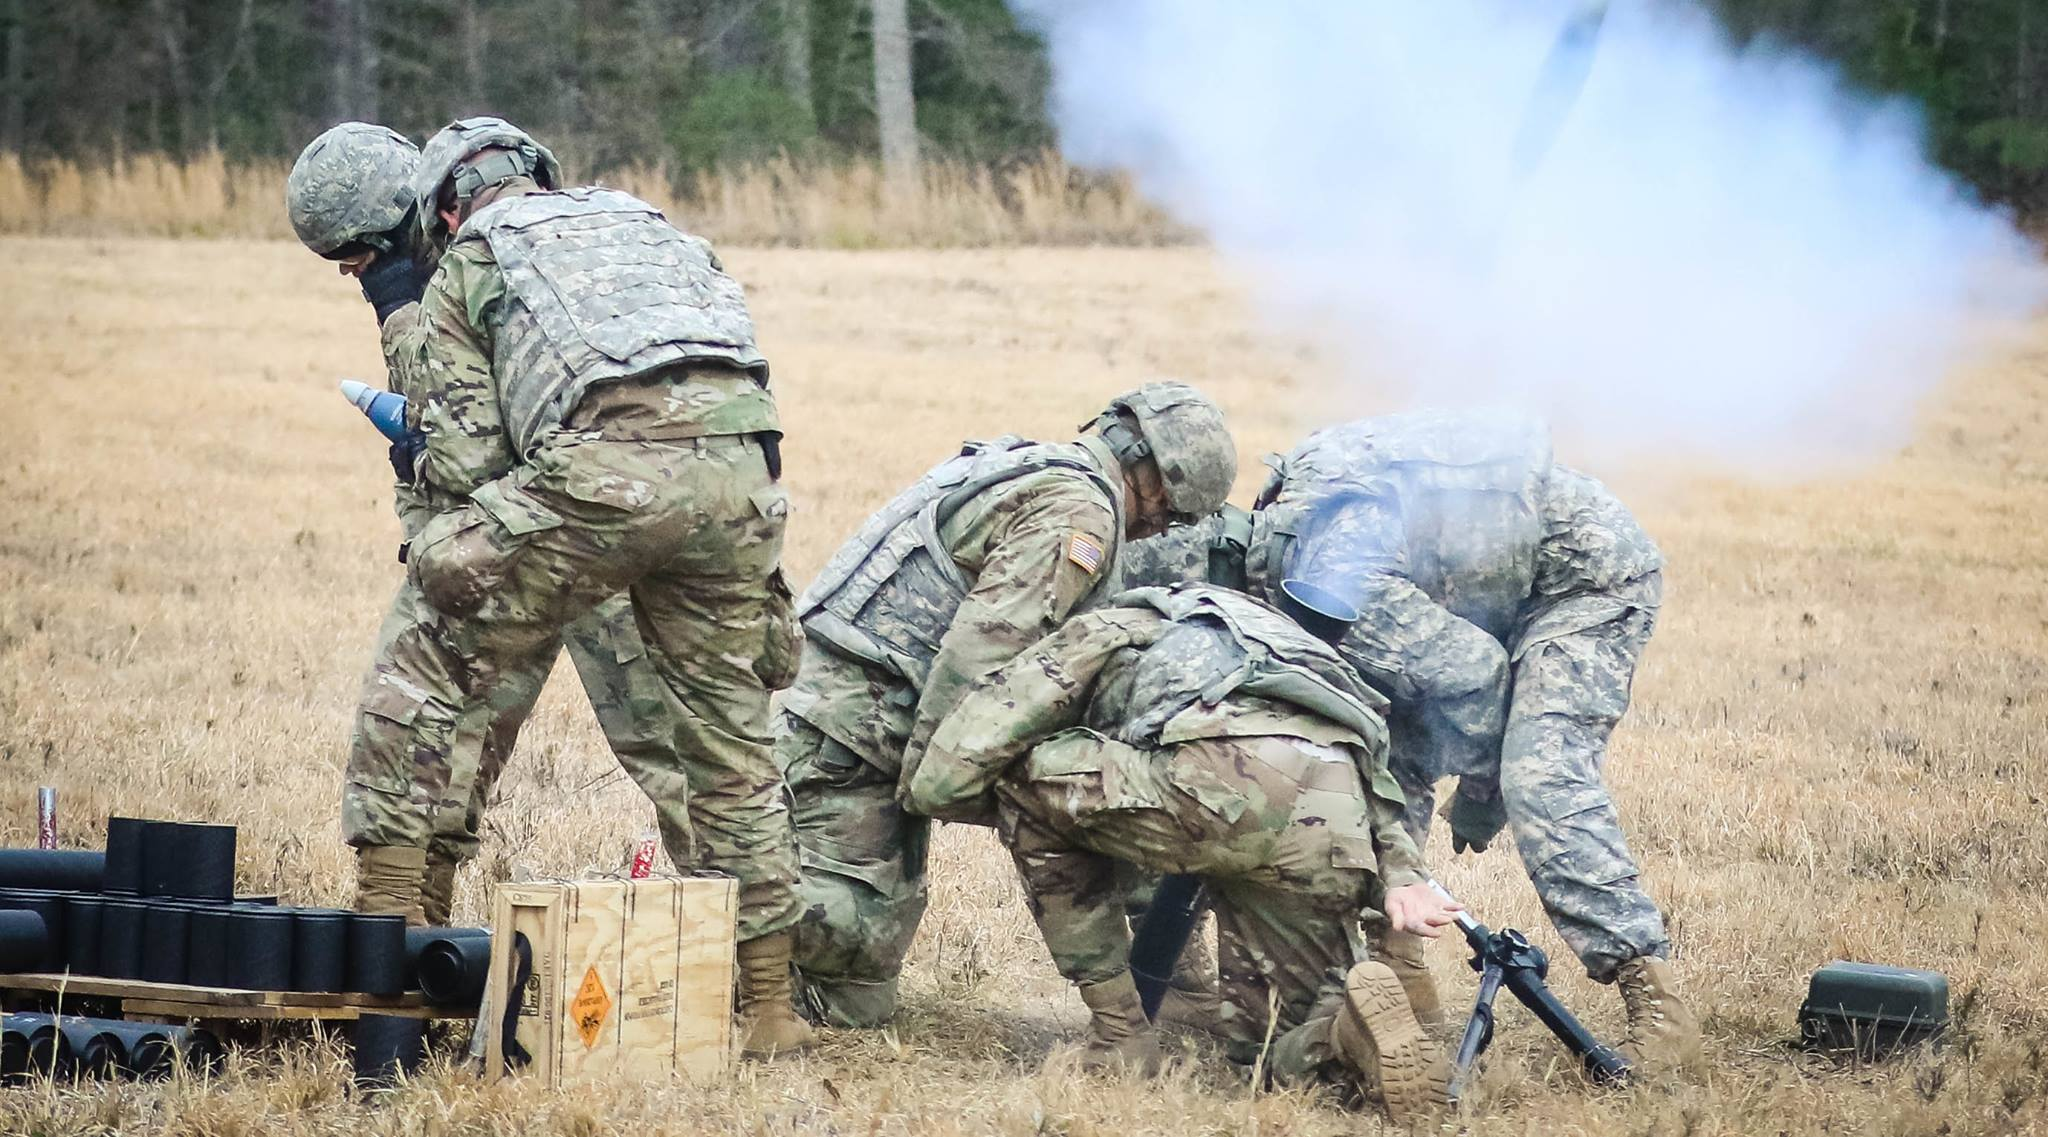 Boom!   Military testing this week at Fort AP Hill